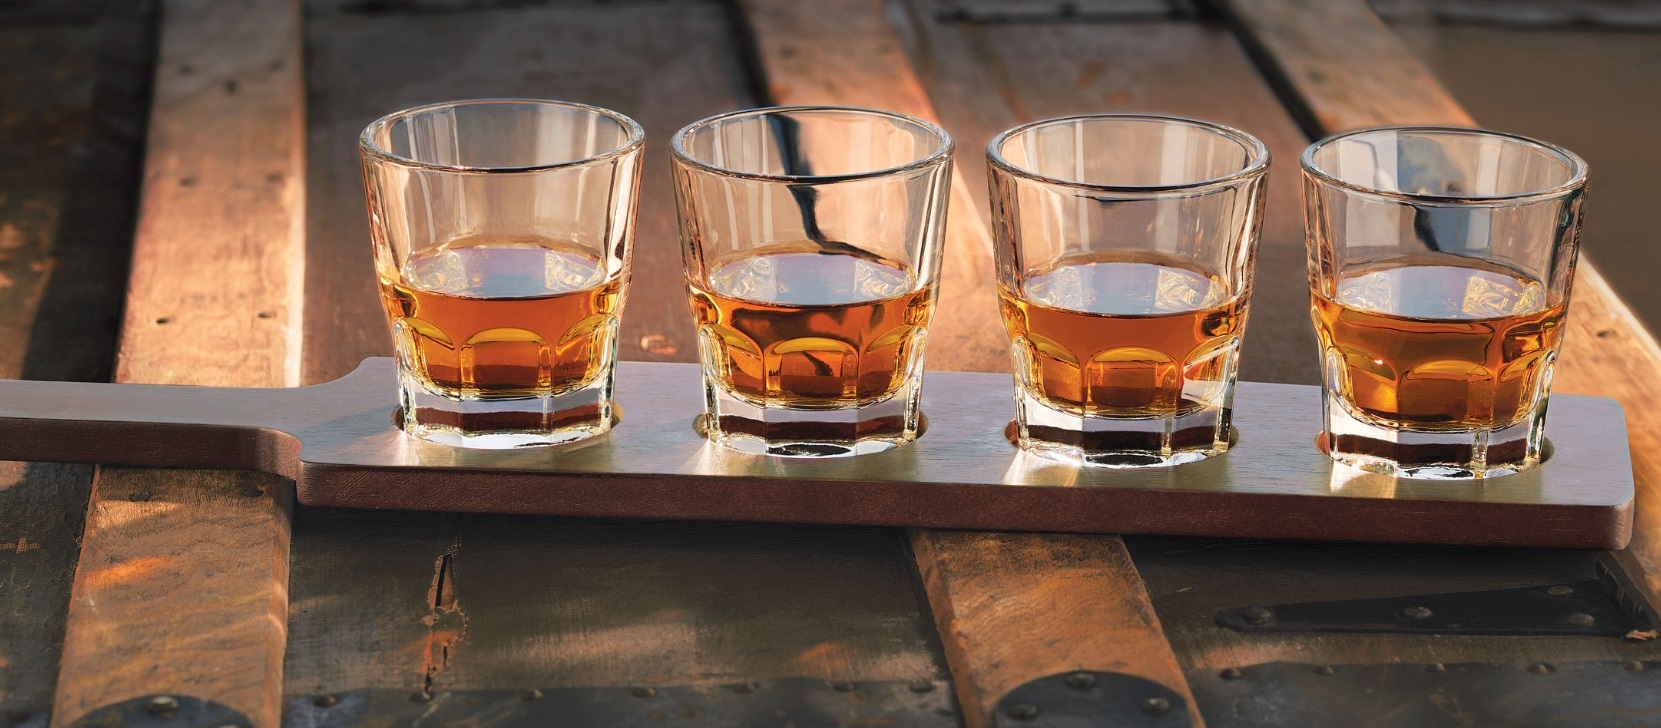 Can Whisky Last A Long Period Of Time Unopened?